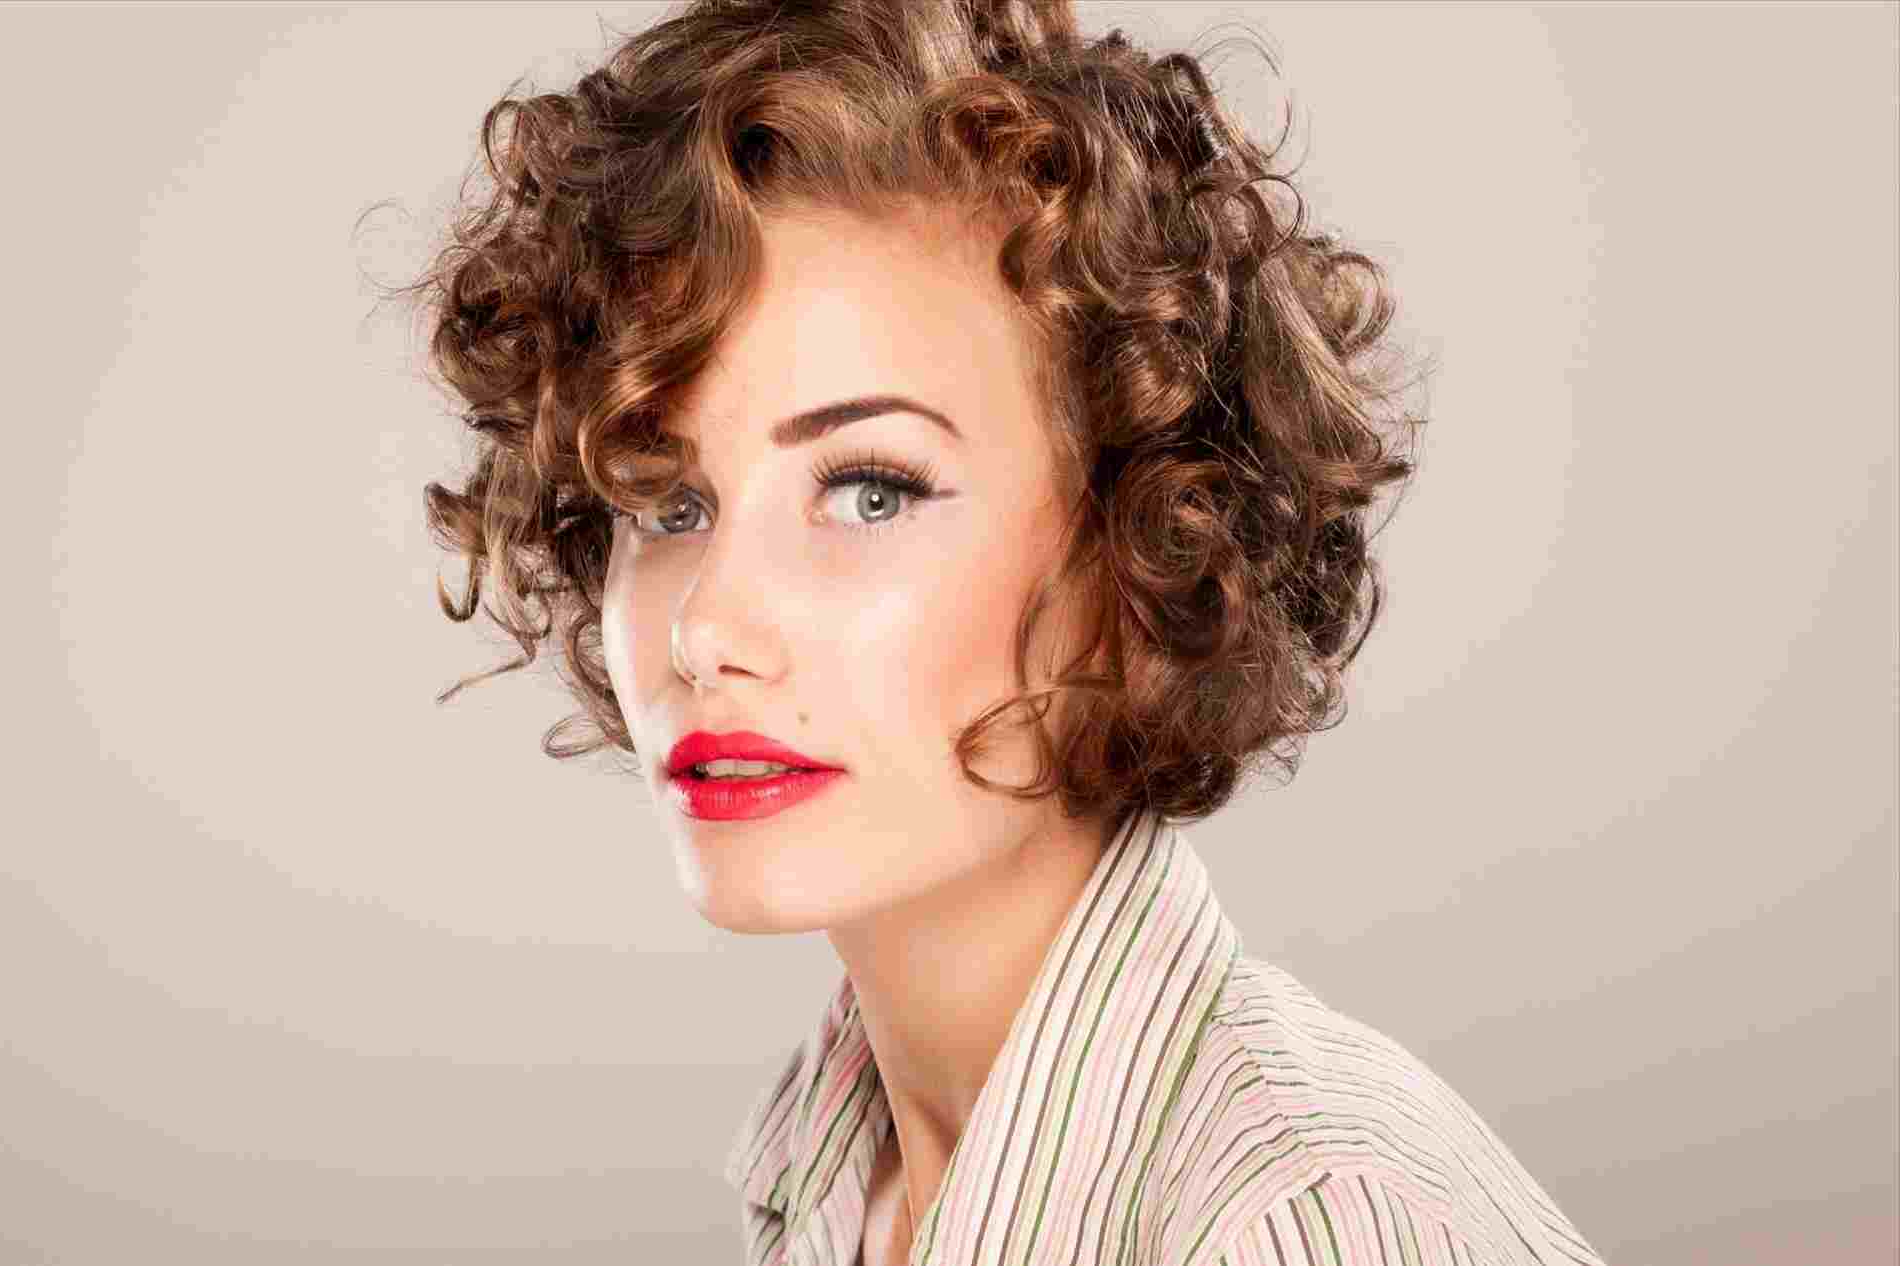 Perfect Short Hair Rhhairstyleslifecom Haircut Images Older Pixie Pertaining To Short Fine Curly Hair Styles (View 25 of 25)